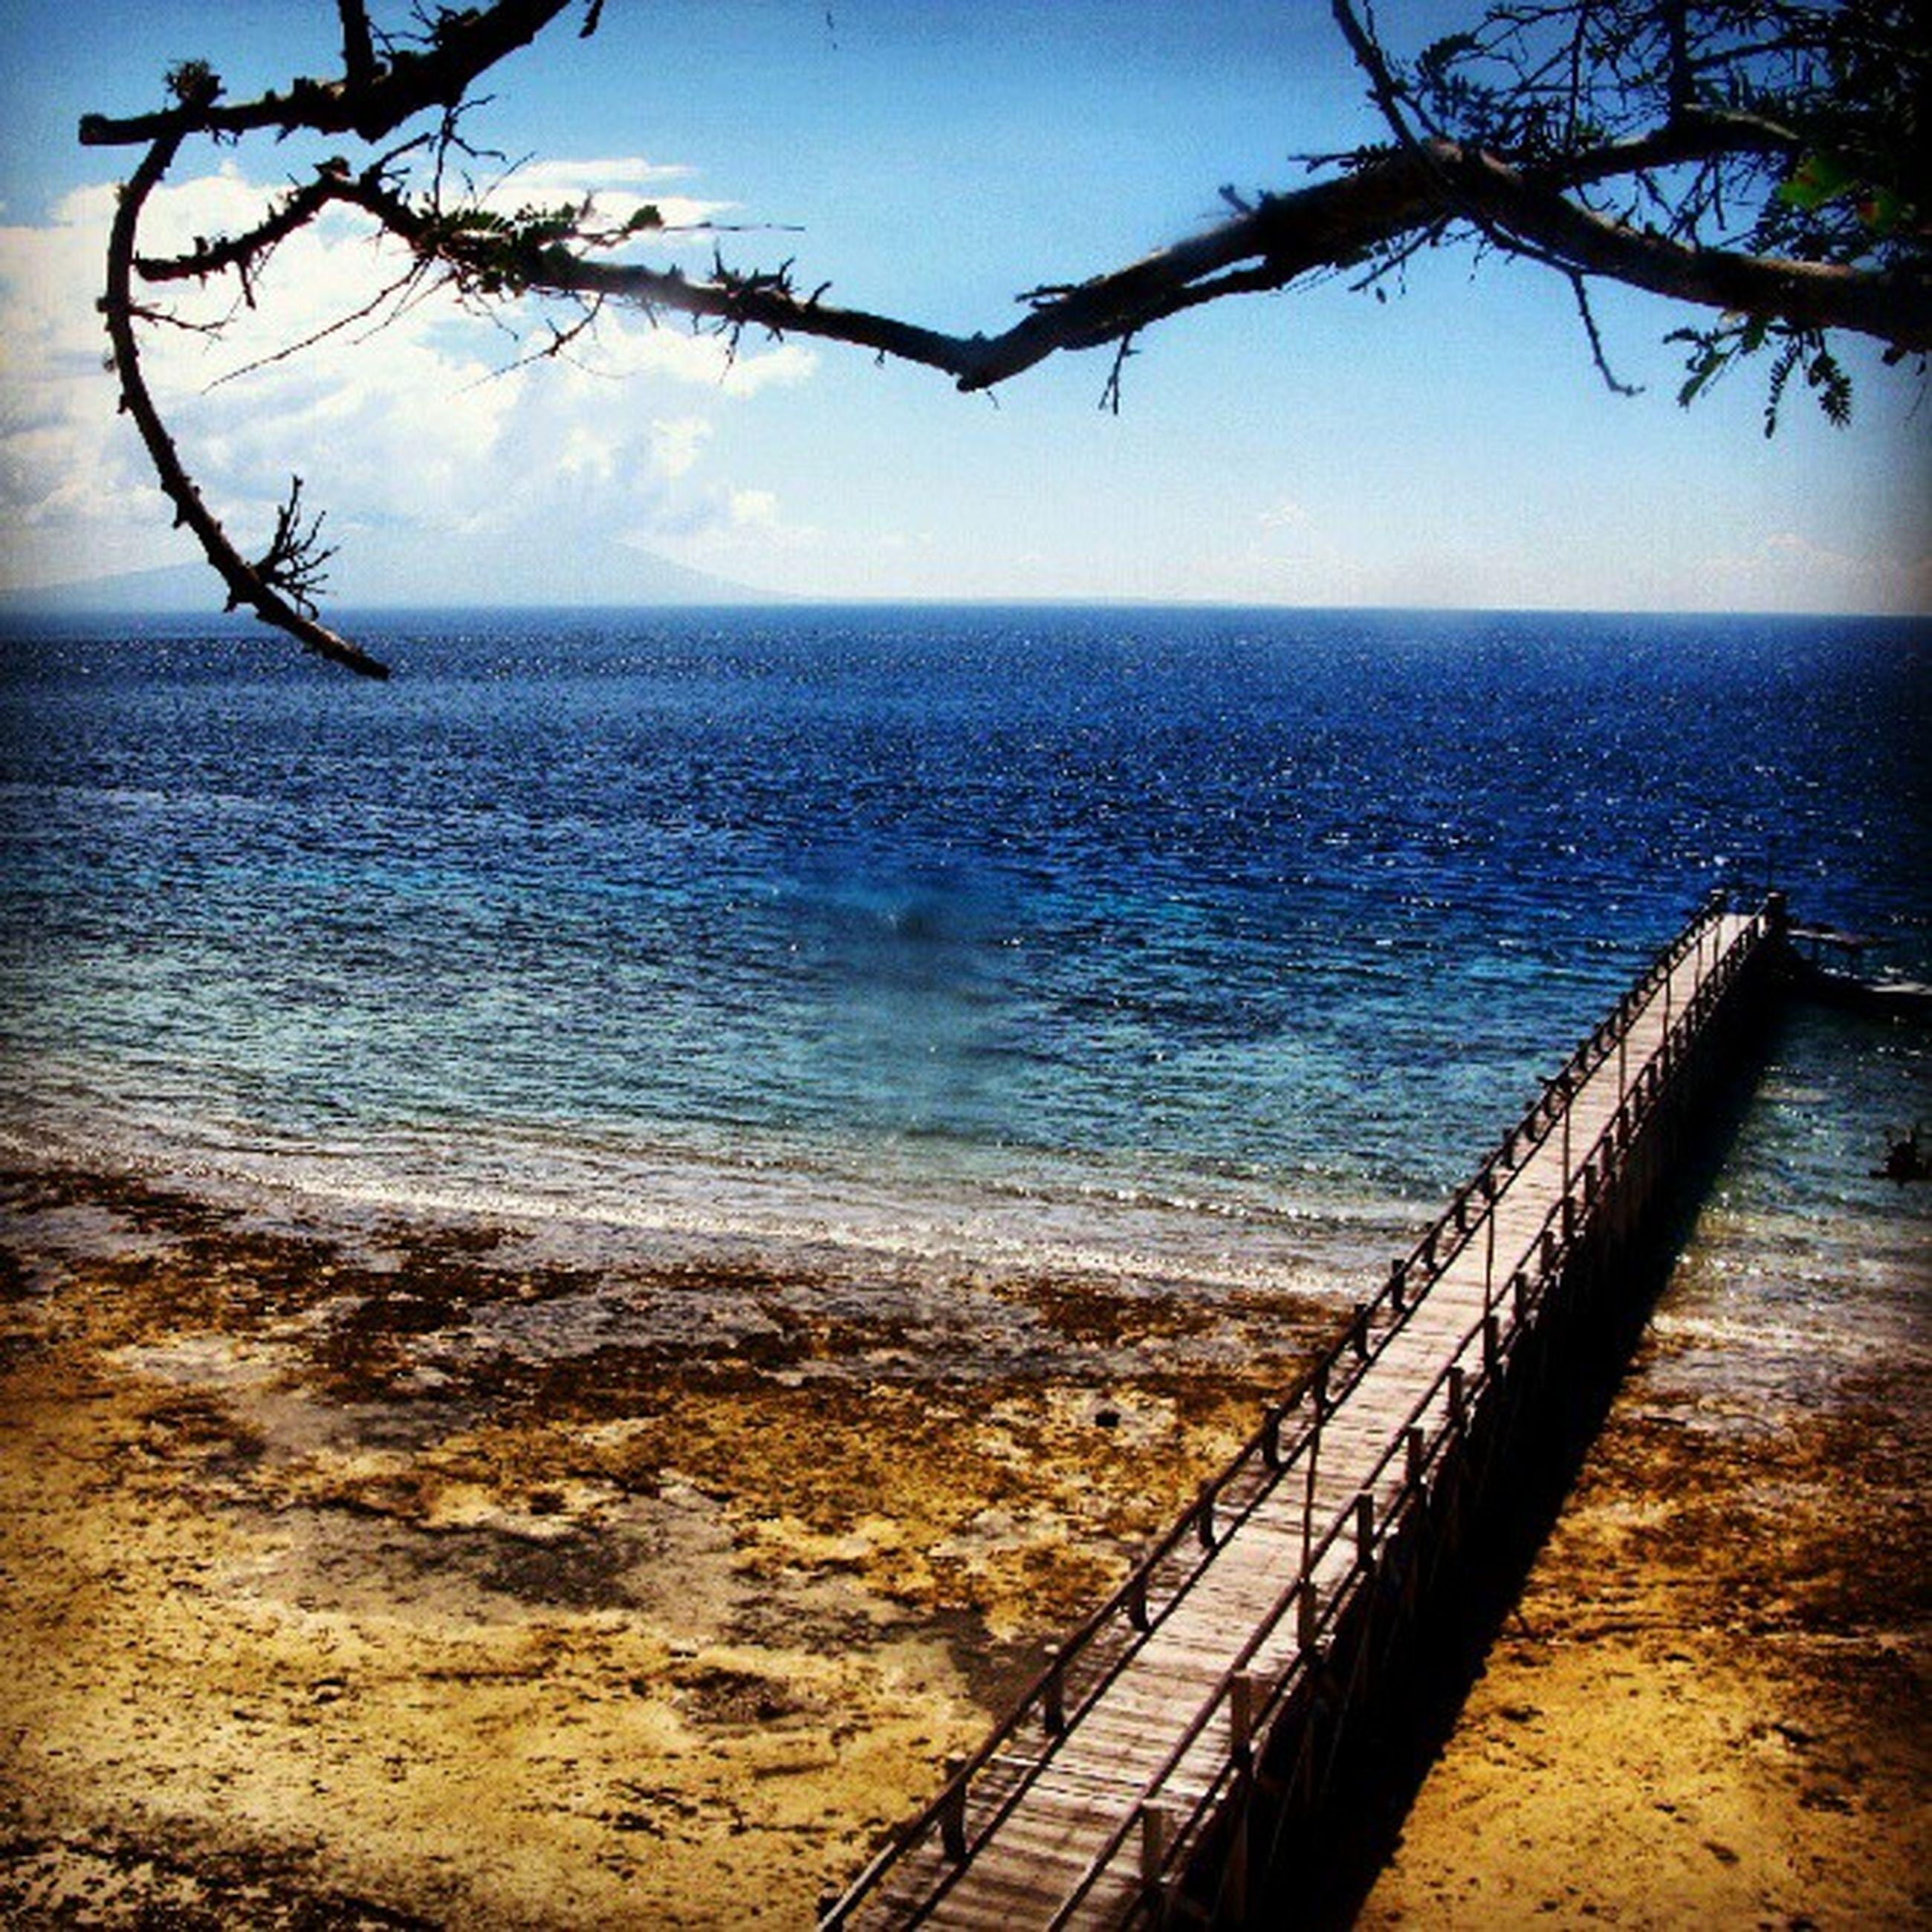 sea, water, horizon over water, tranquility, tranquil scene, scenics, sky, railing, beauty in nature, beach, nature, shore, idyllic, fence, outdoors, no people, branch, pier, blue, ocean